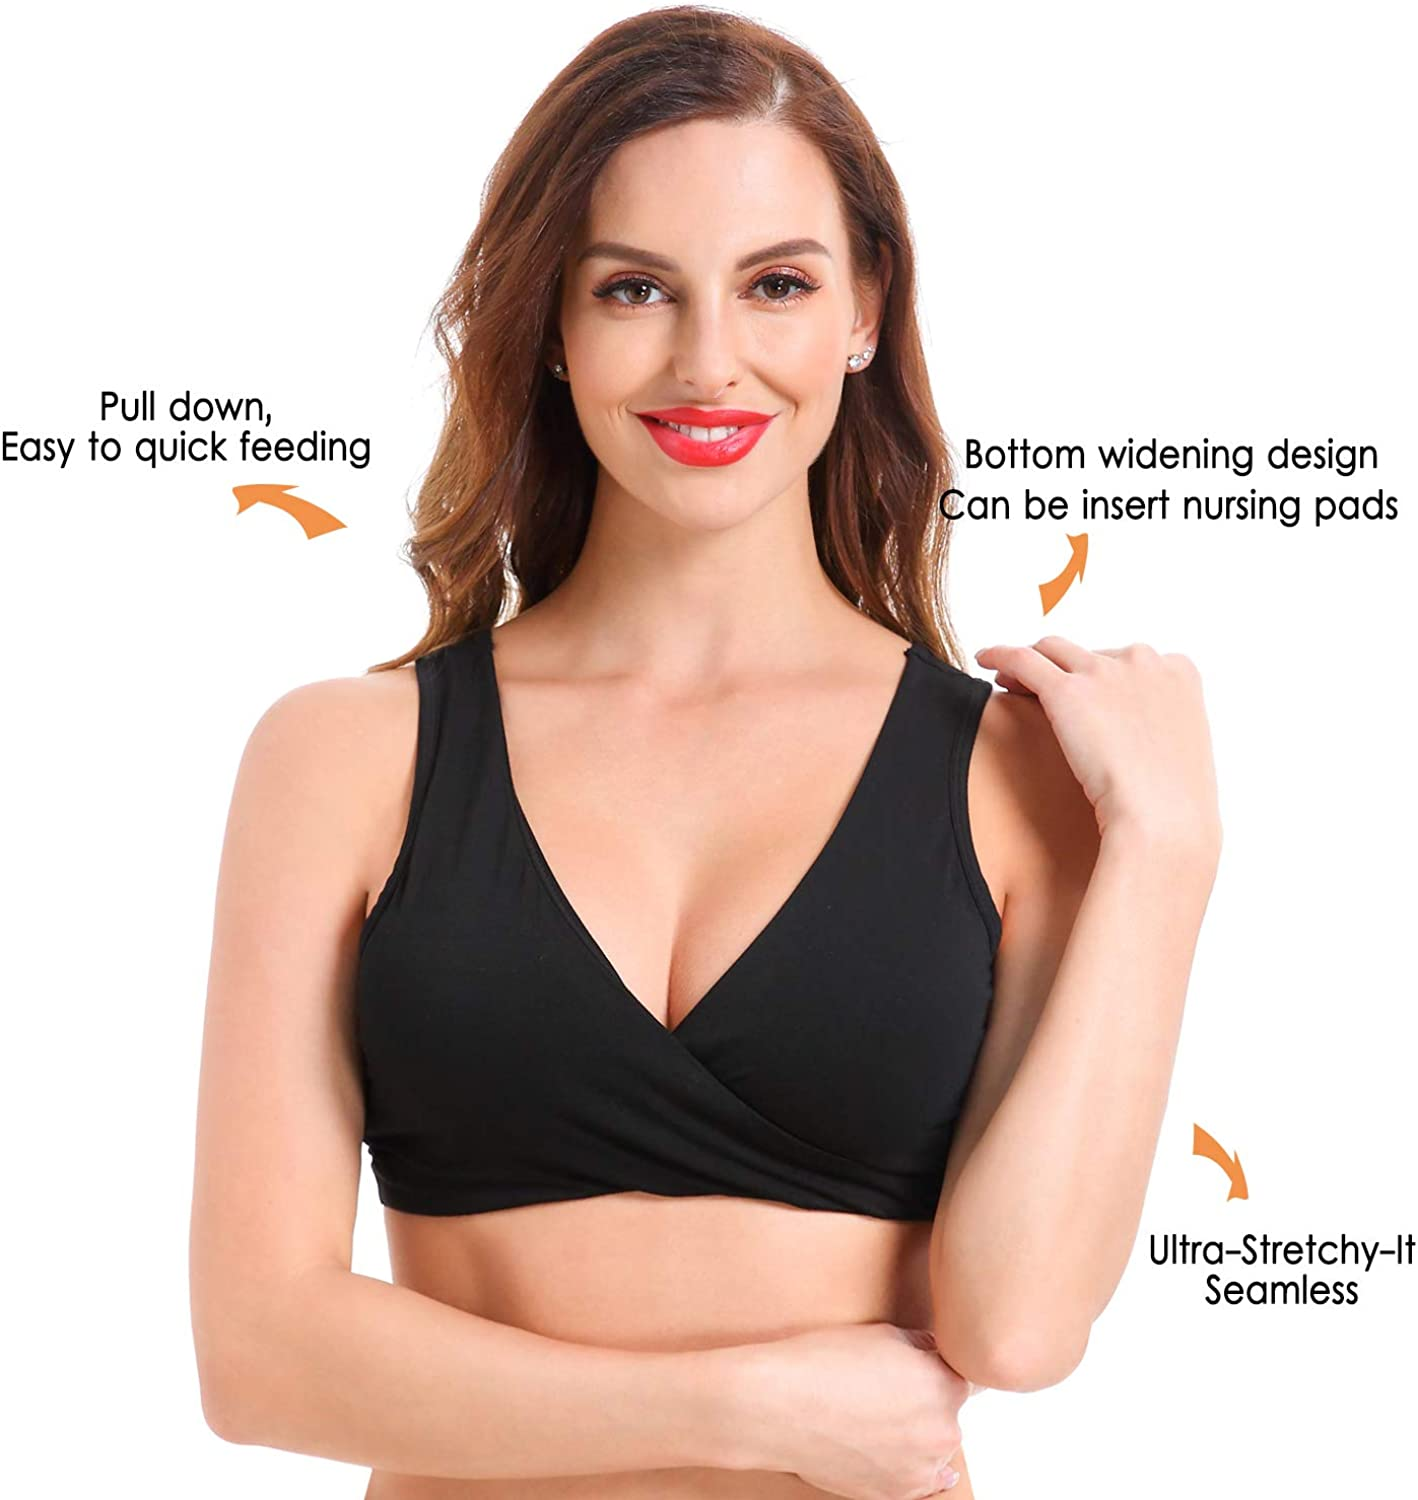 Ceestyle Womens Cotton Seamless Wide Shoulder Straps Sleep Bra for Nursing and Maternity 2020 Upgraded Version